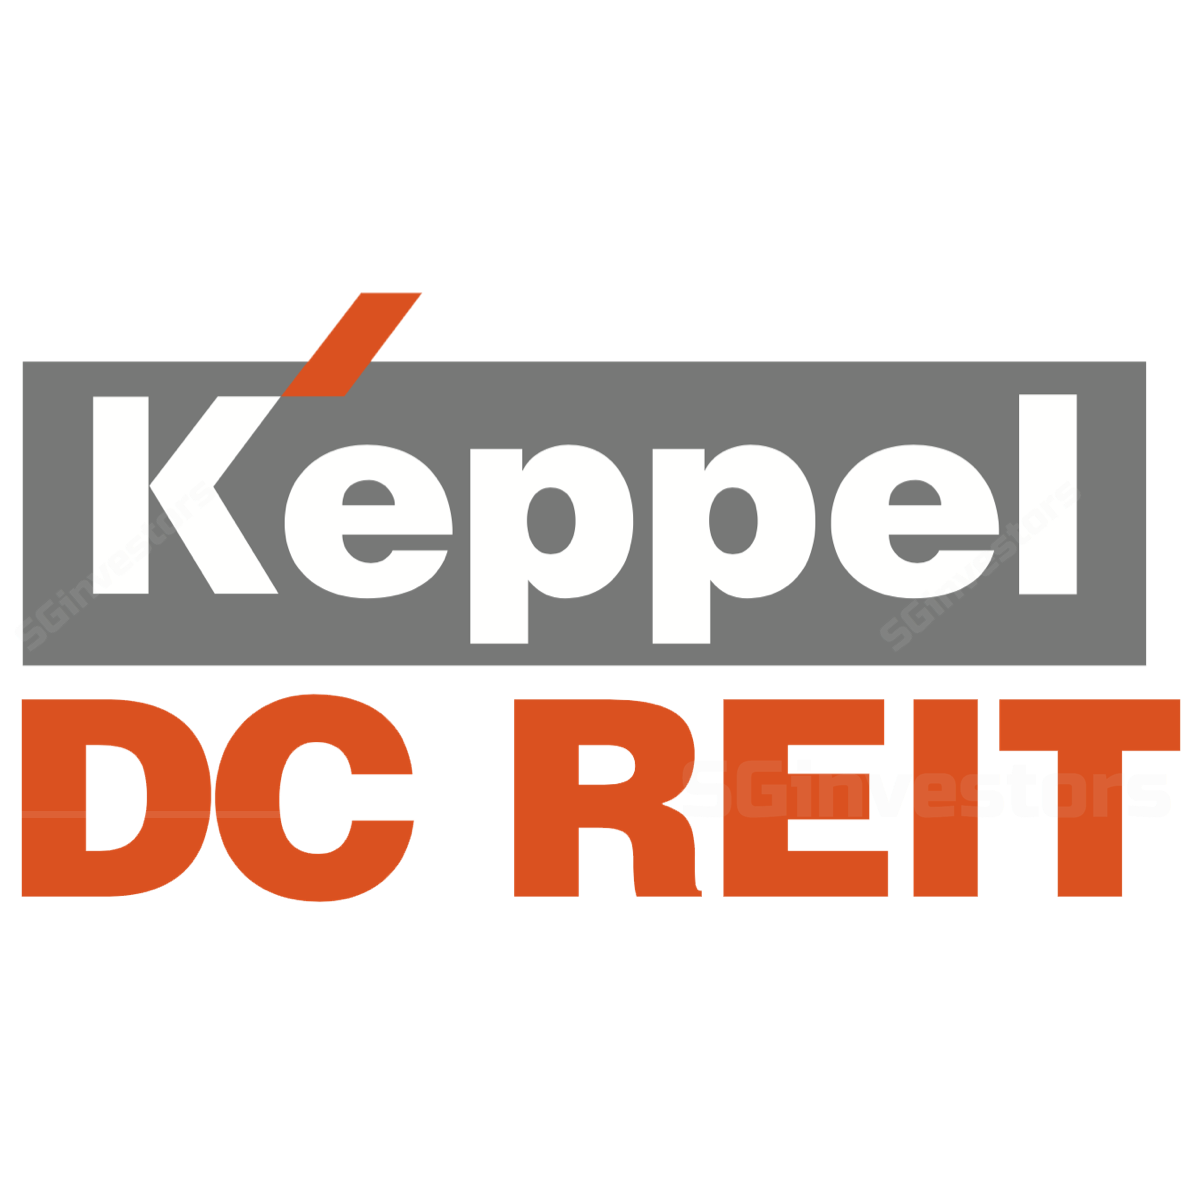 Keppel DC REIT - DBS Vickers 2017-01-04: Destiny in its own hands